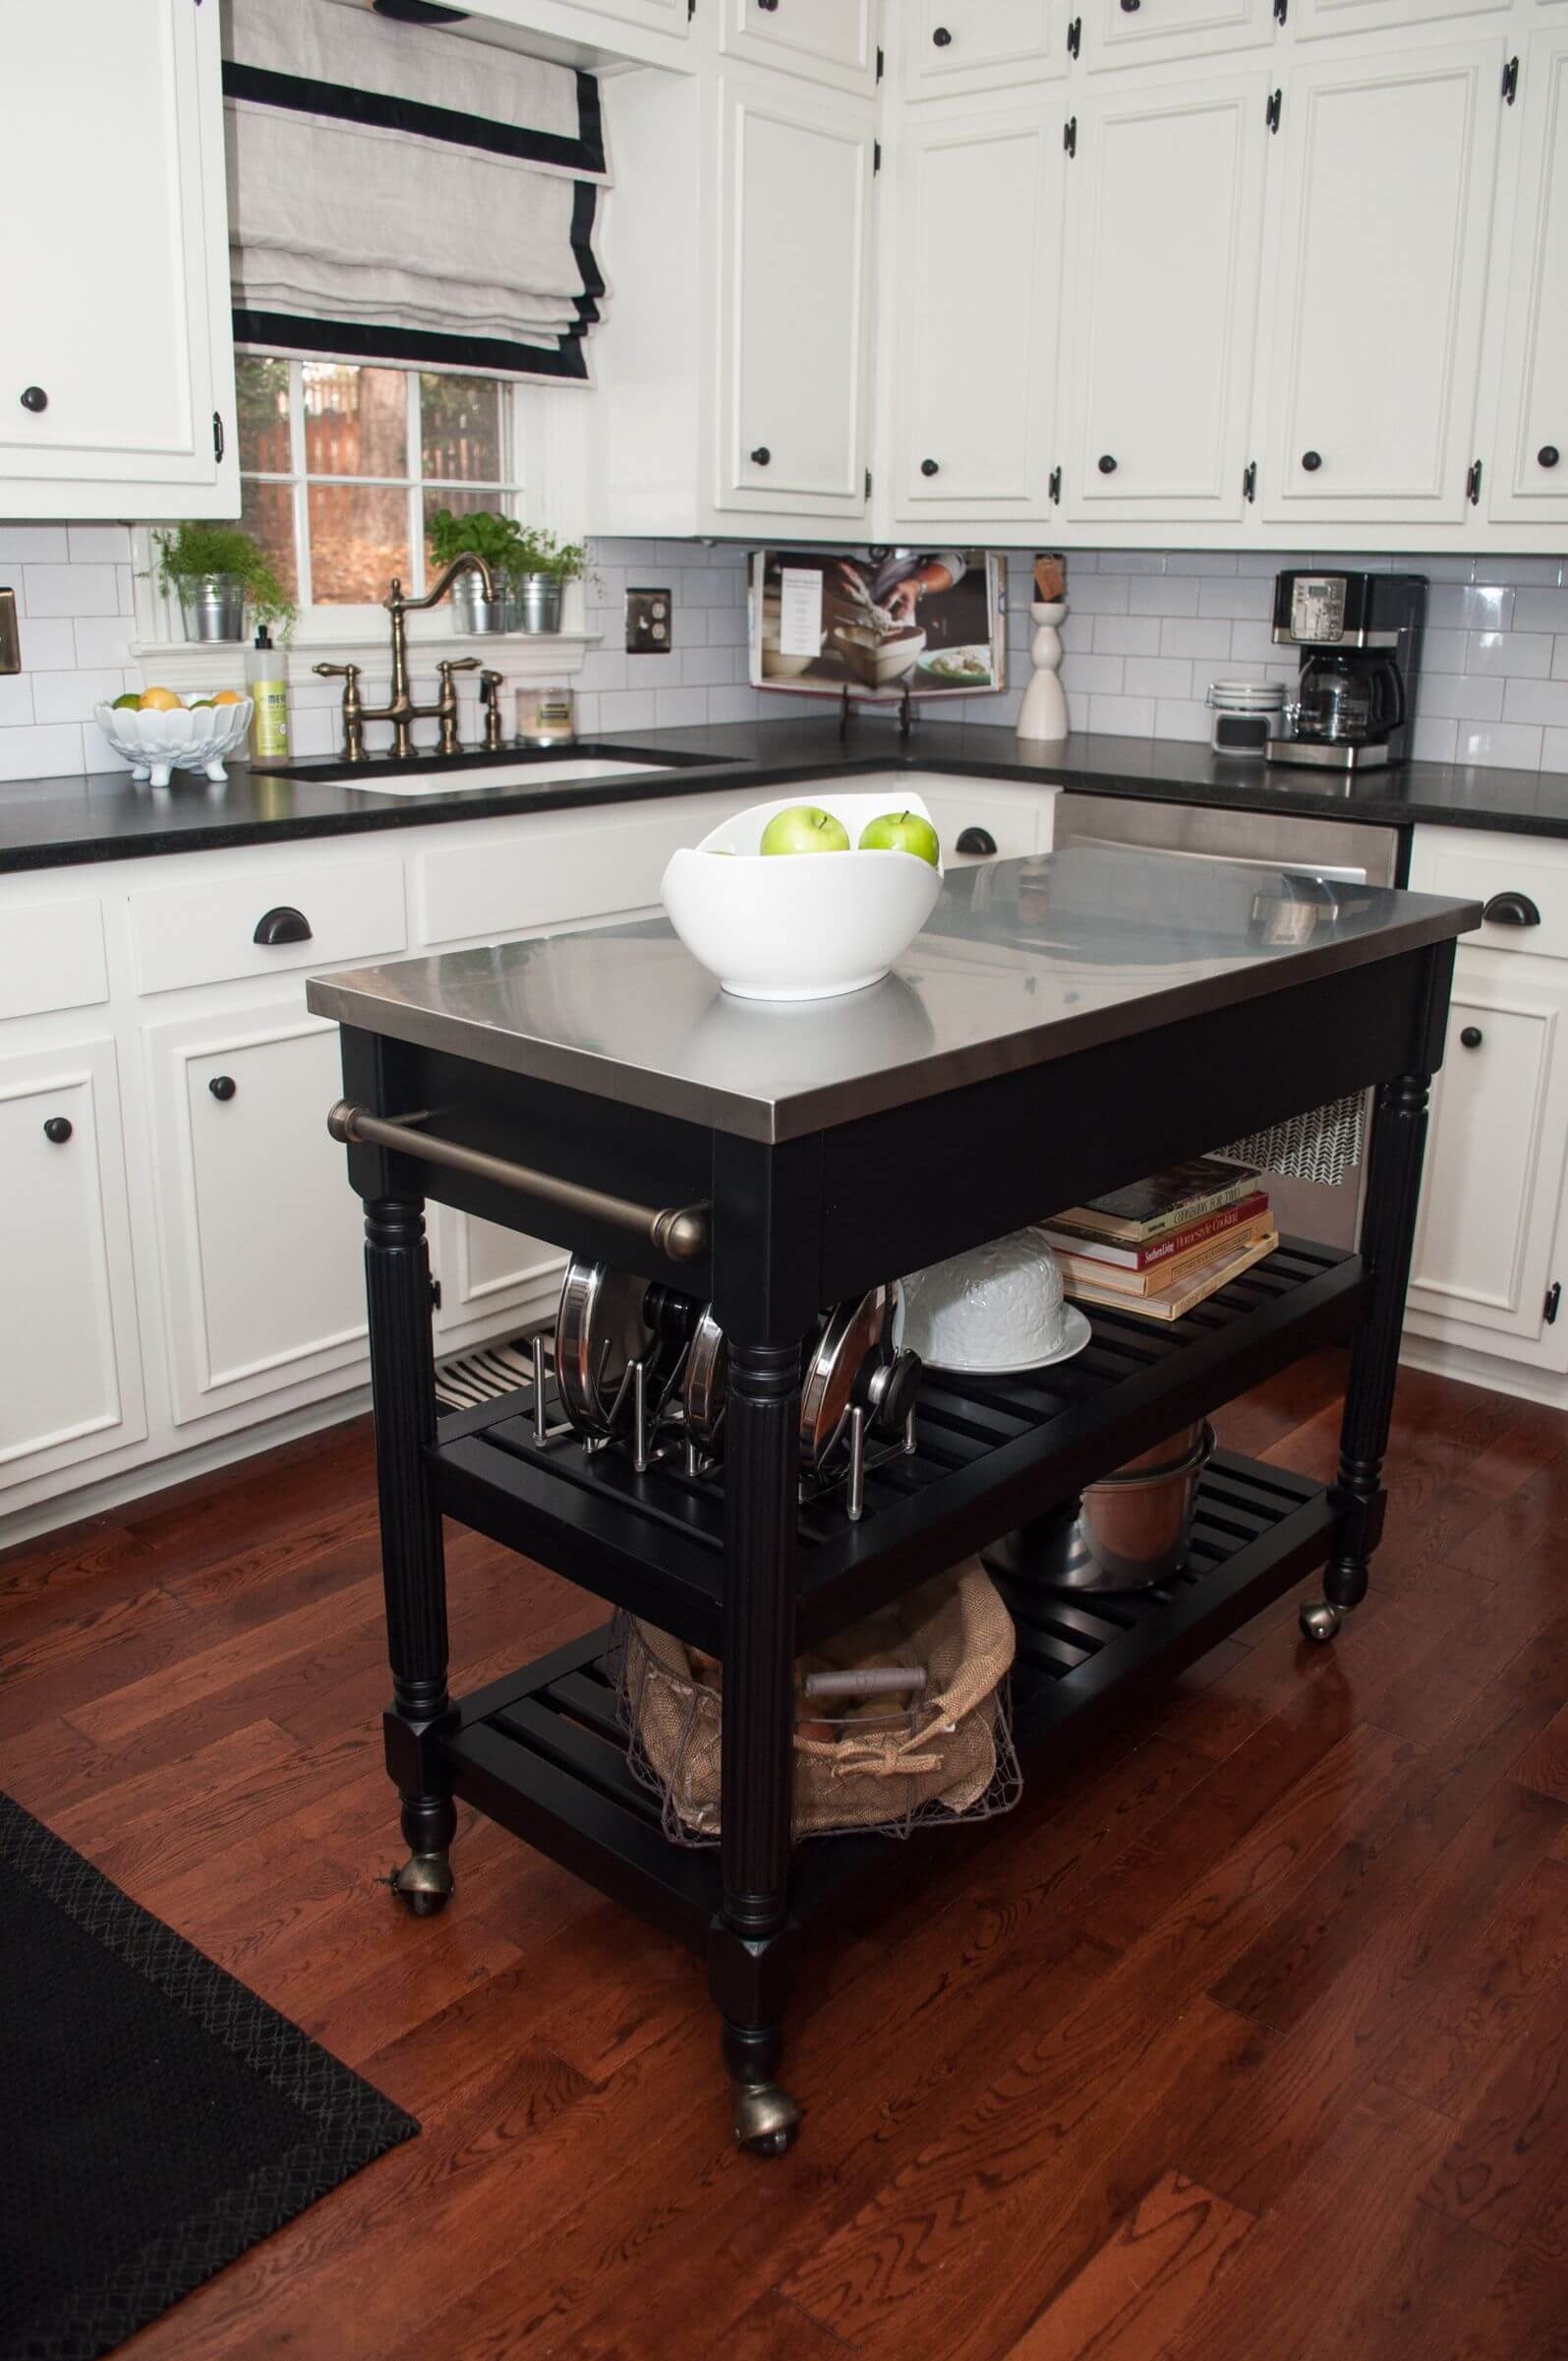 Design Narrow Kitchen Islands 10 types of small kitchen islands on wheels